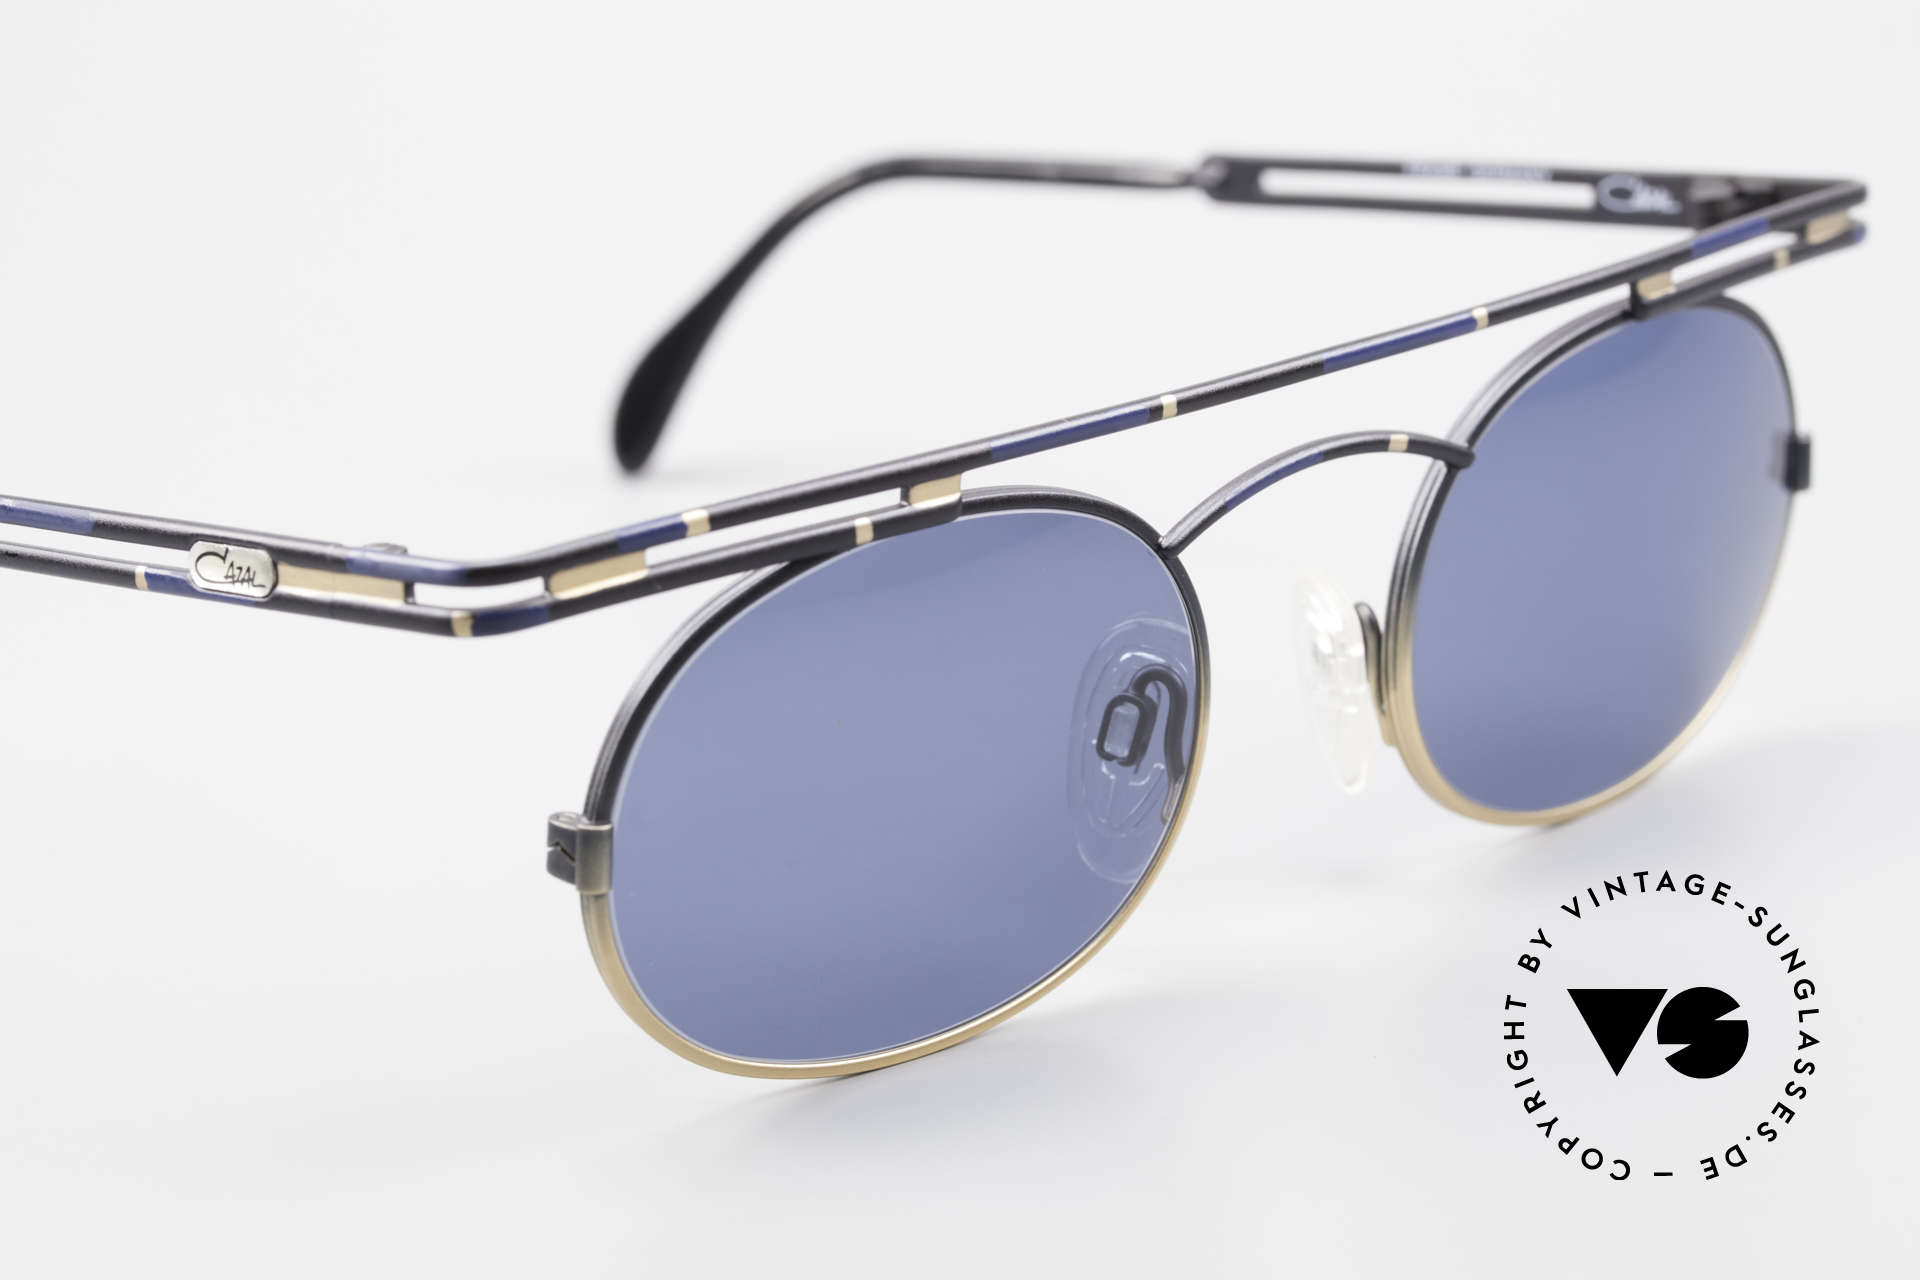 Cazal 761 Original Old Cazal Sunglasses, NO RETRO SHADES, but TRUE VINTAGE sunglasses!, Made for Men and Women